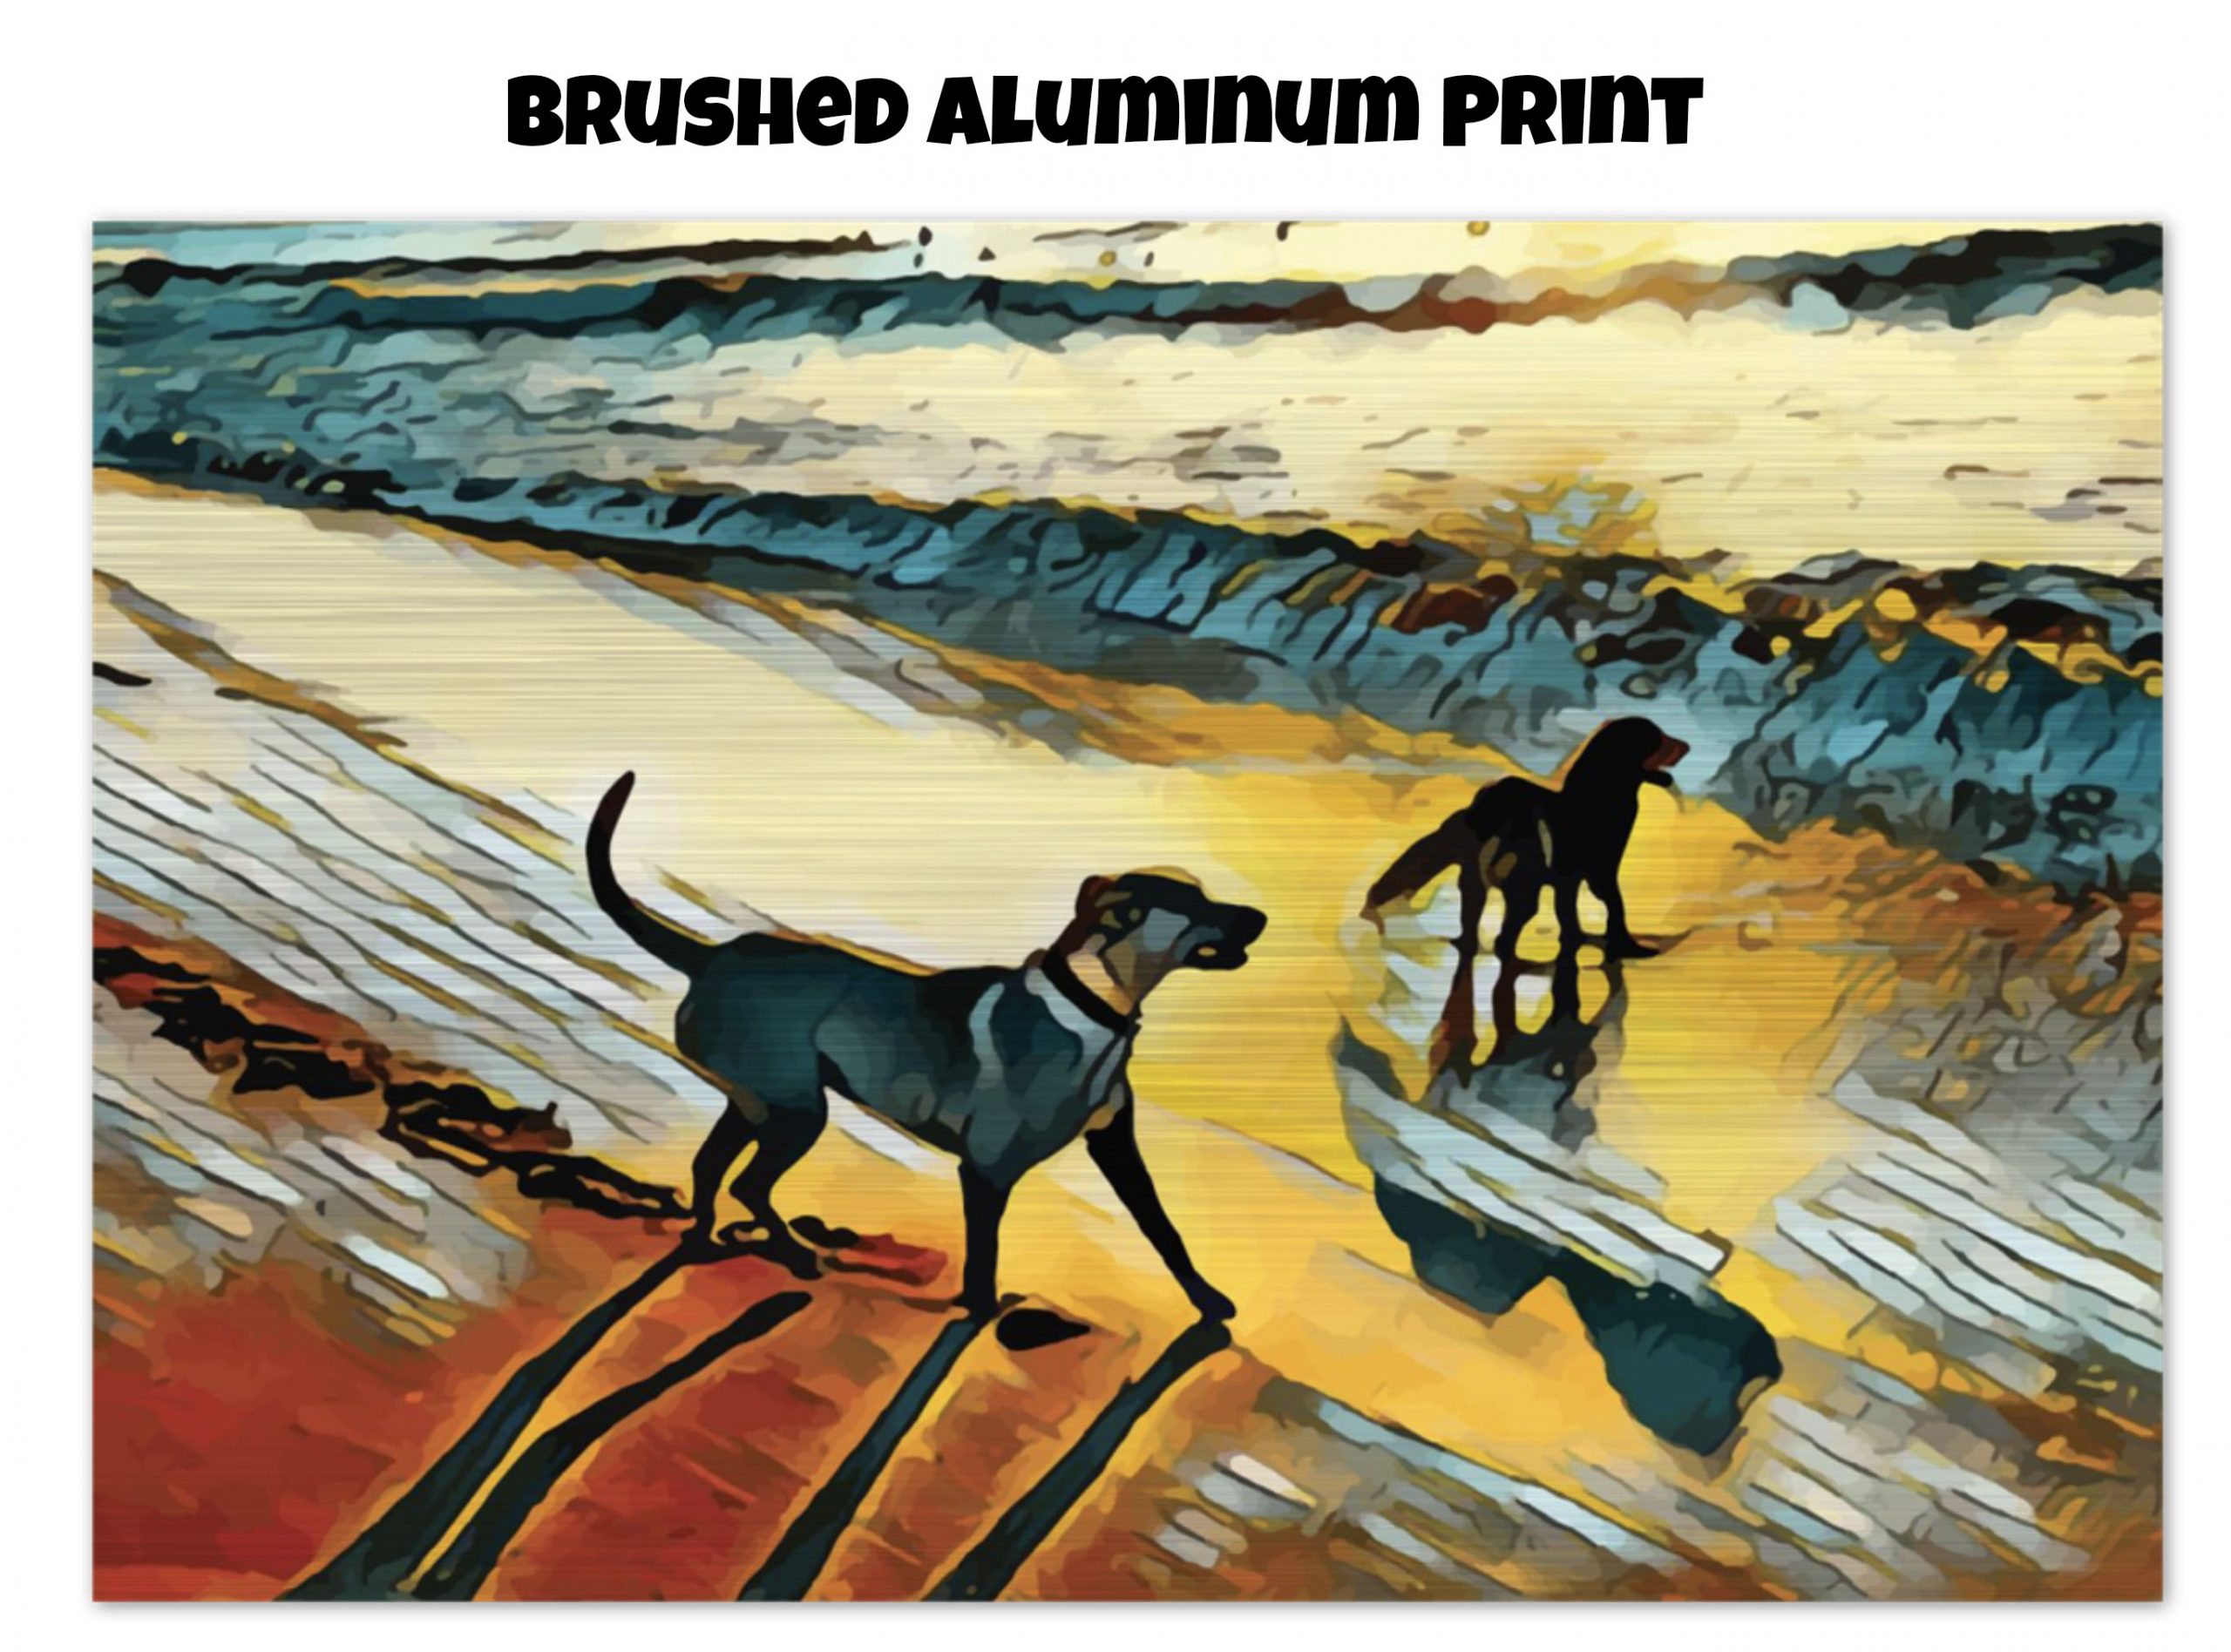 Brushed Aluminum print of two dogs wading in the surf in golden tones of a sunset